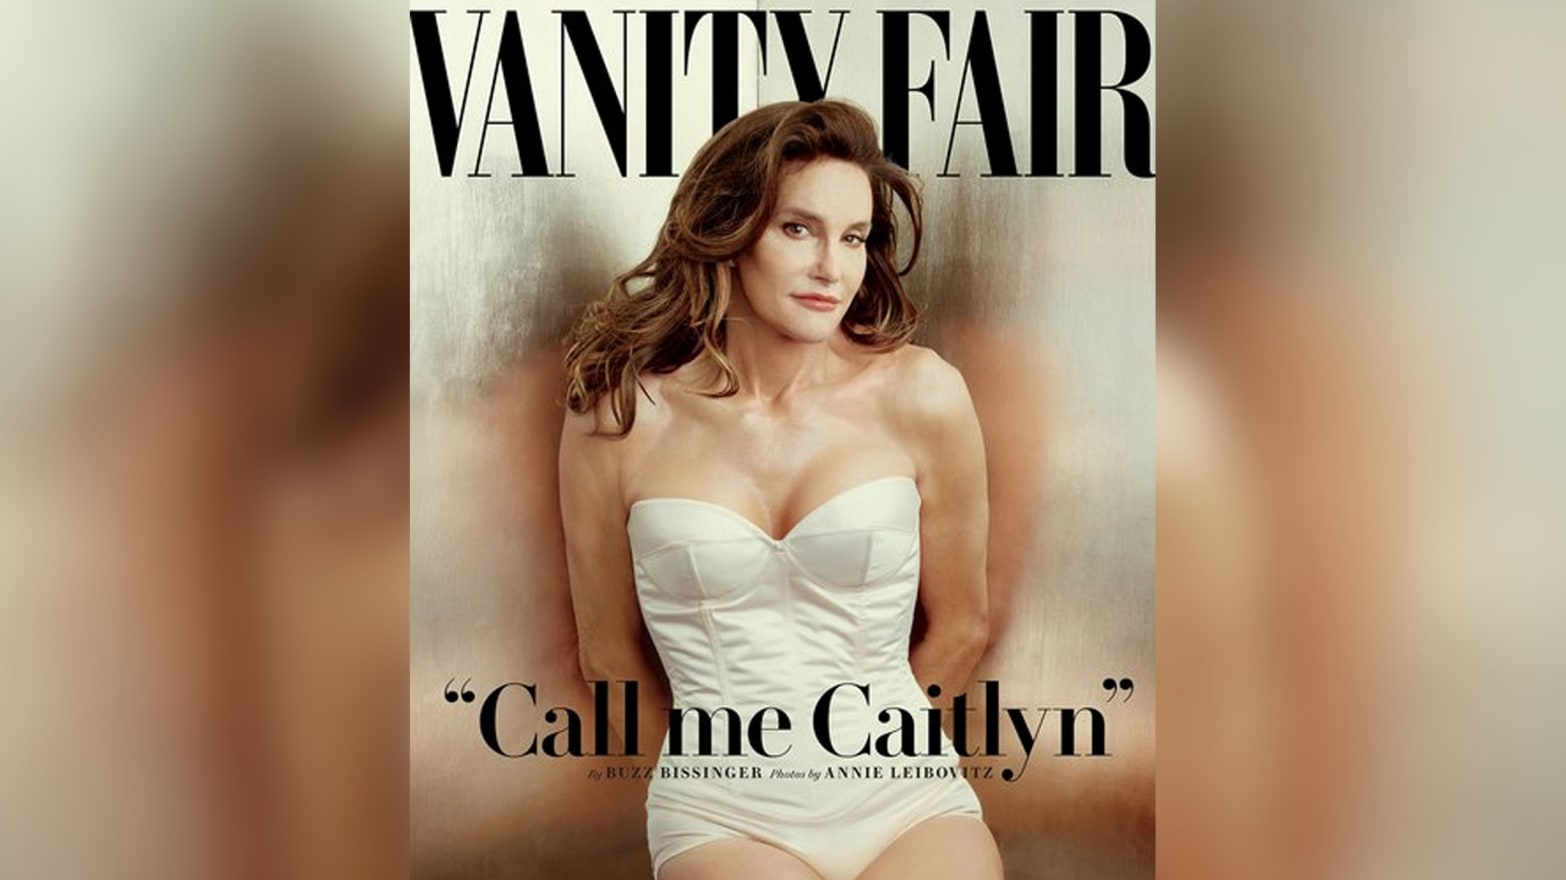 6bc5138385e Caitlyn Jenner Is Pissing Off Feminists and Bigots—Good for Her